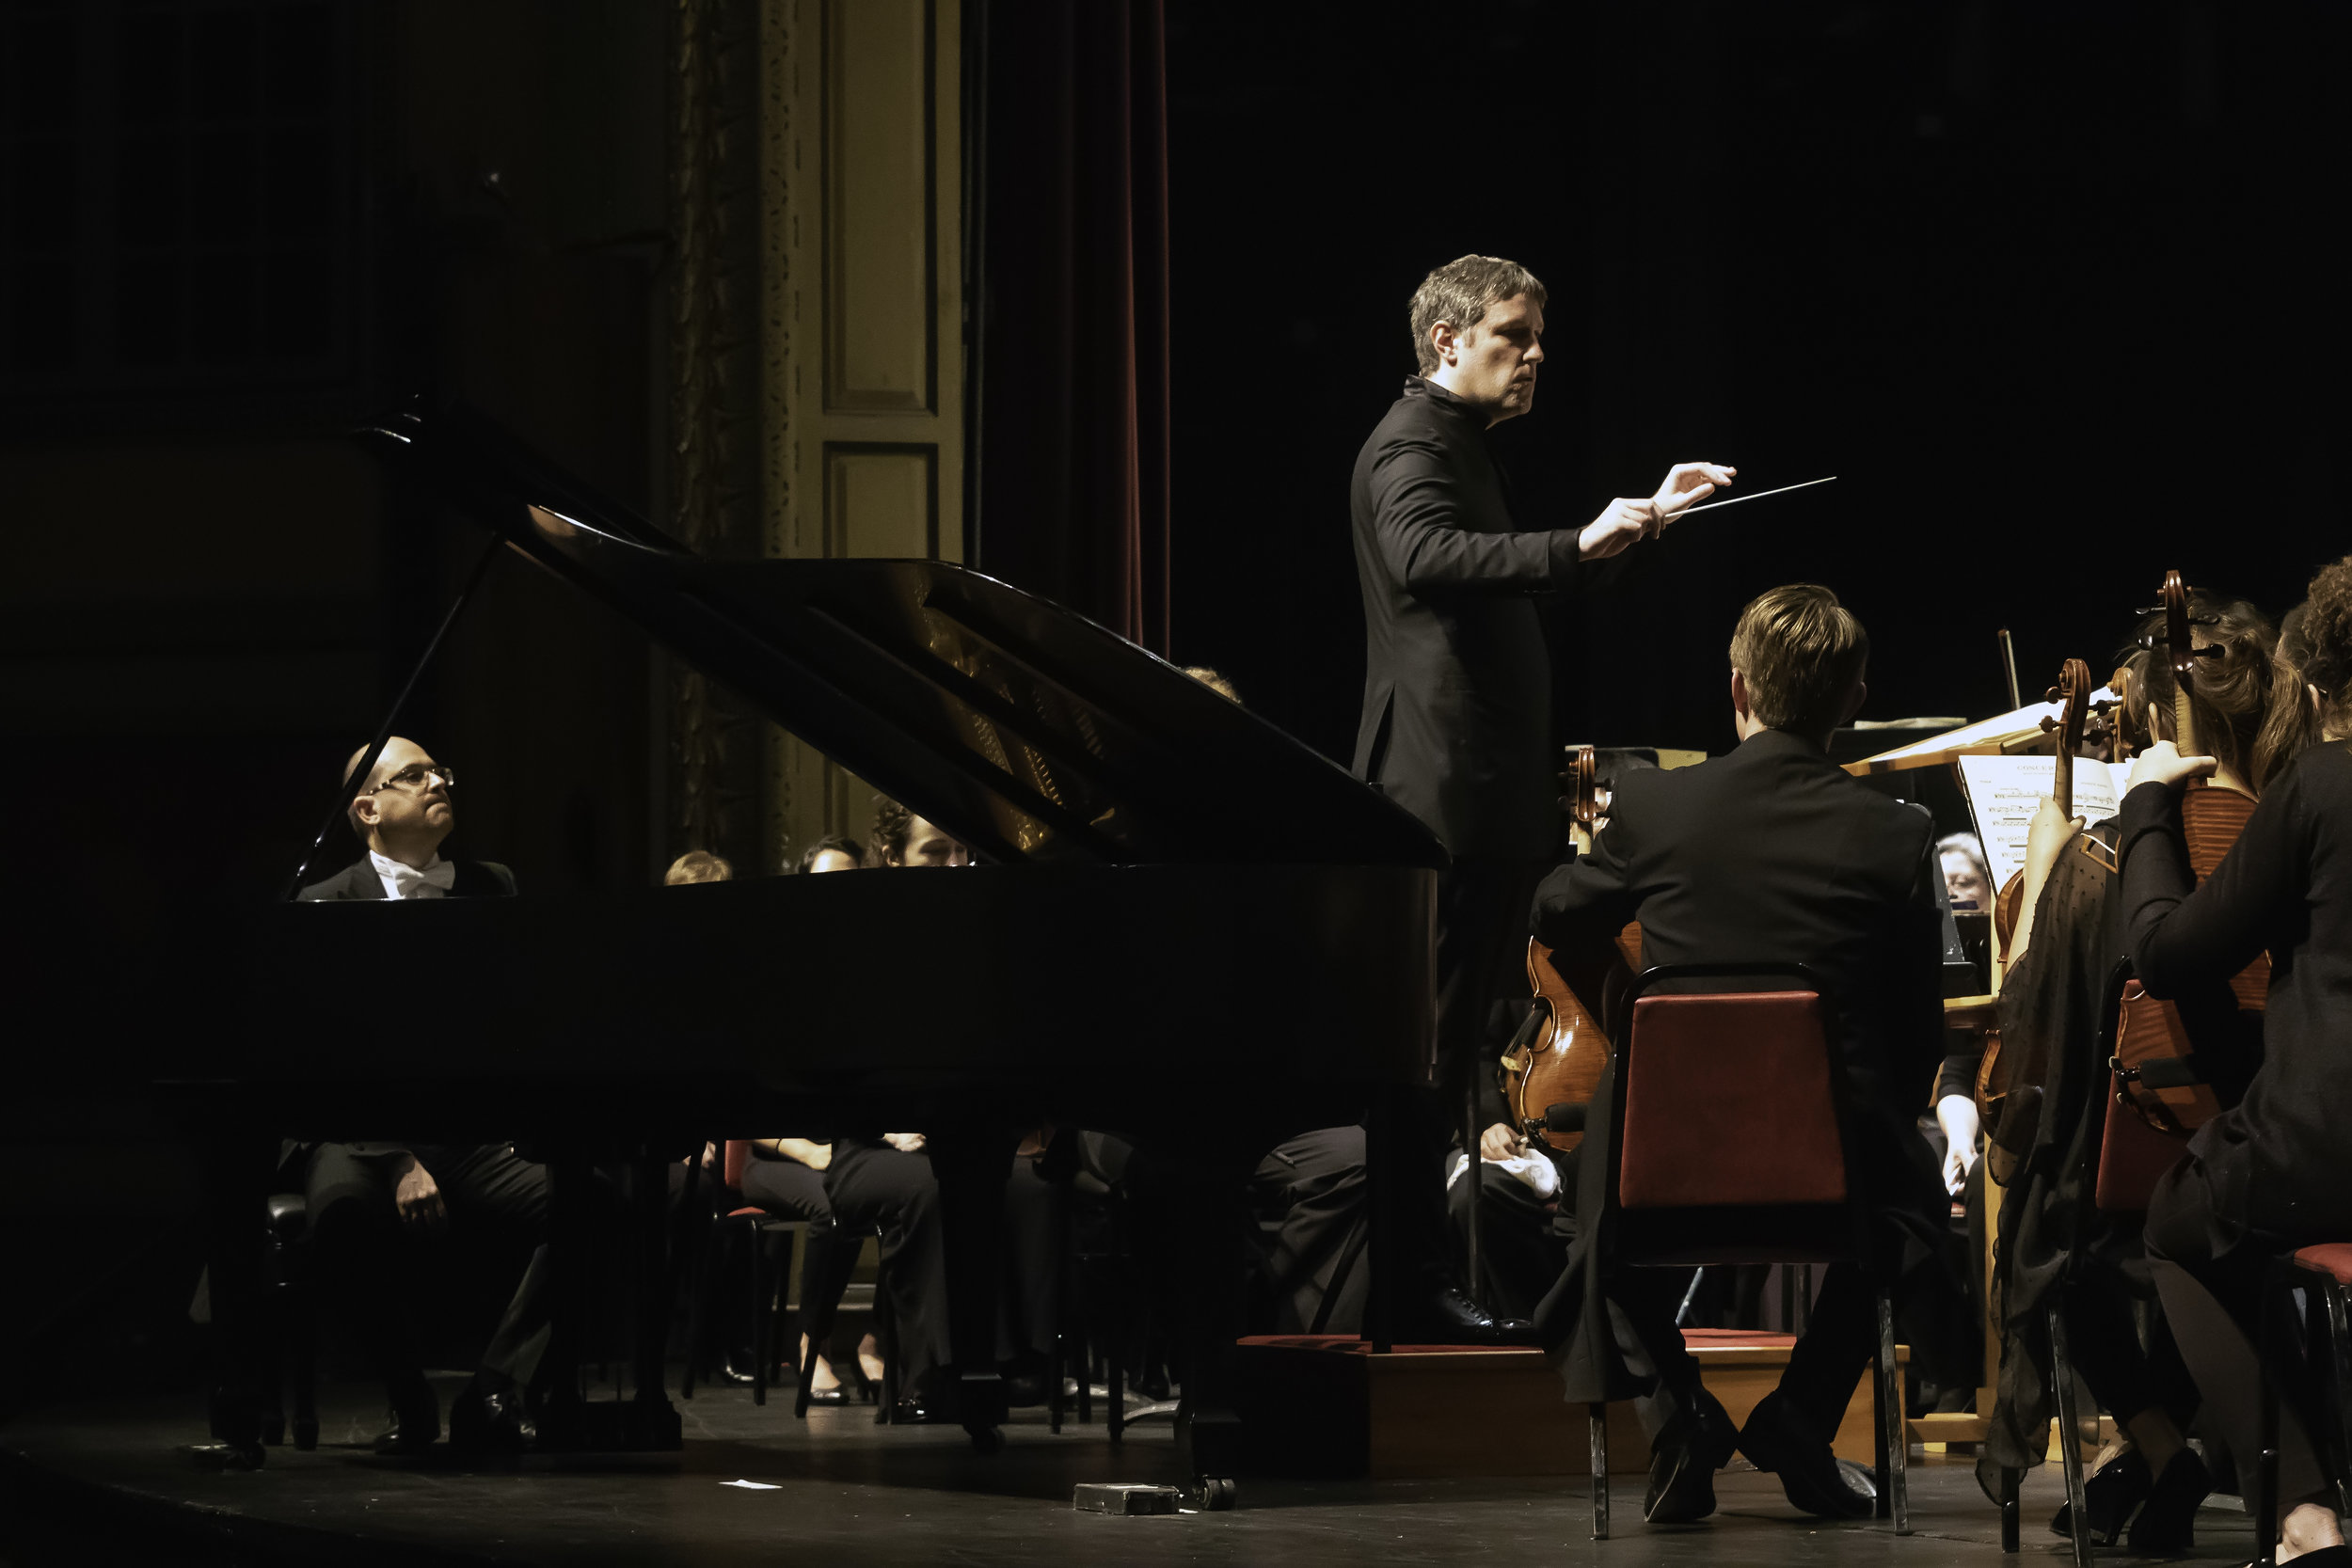 Yaniv Dinur conducts the New Bedford Symphony Orchestra, with pianist Roberto Plano, 15 May 2018. Richard Van Inwegen photograph